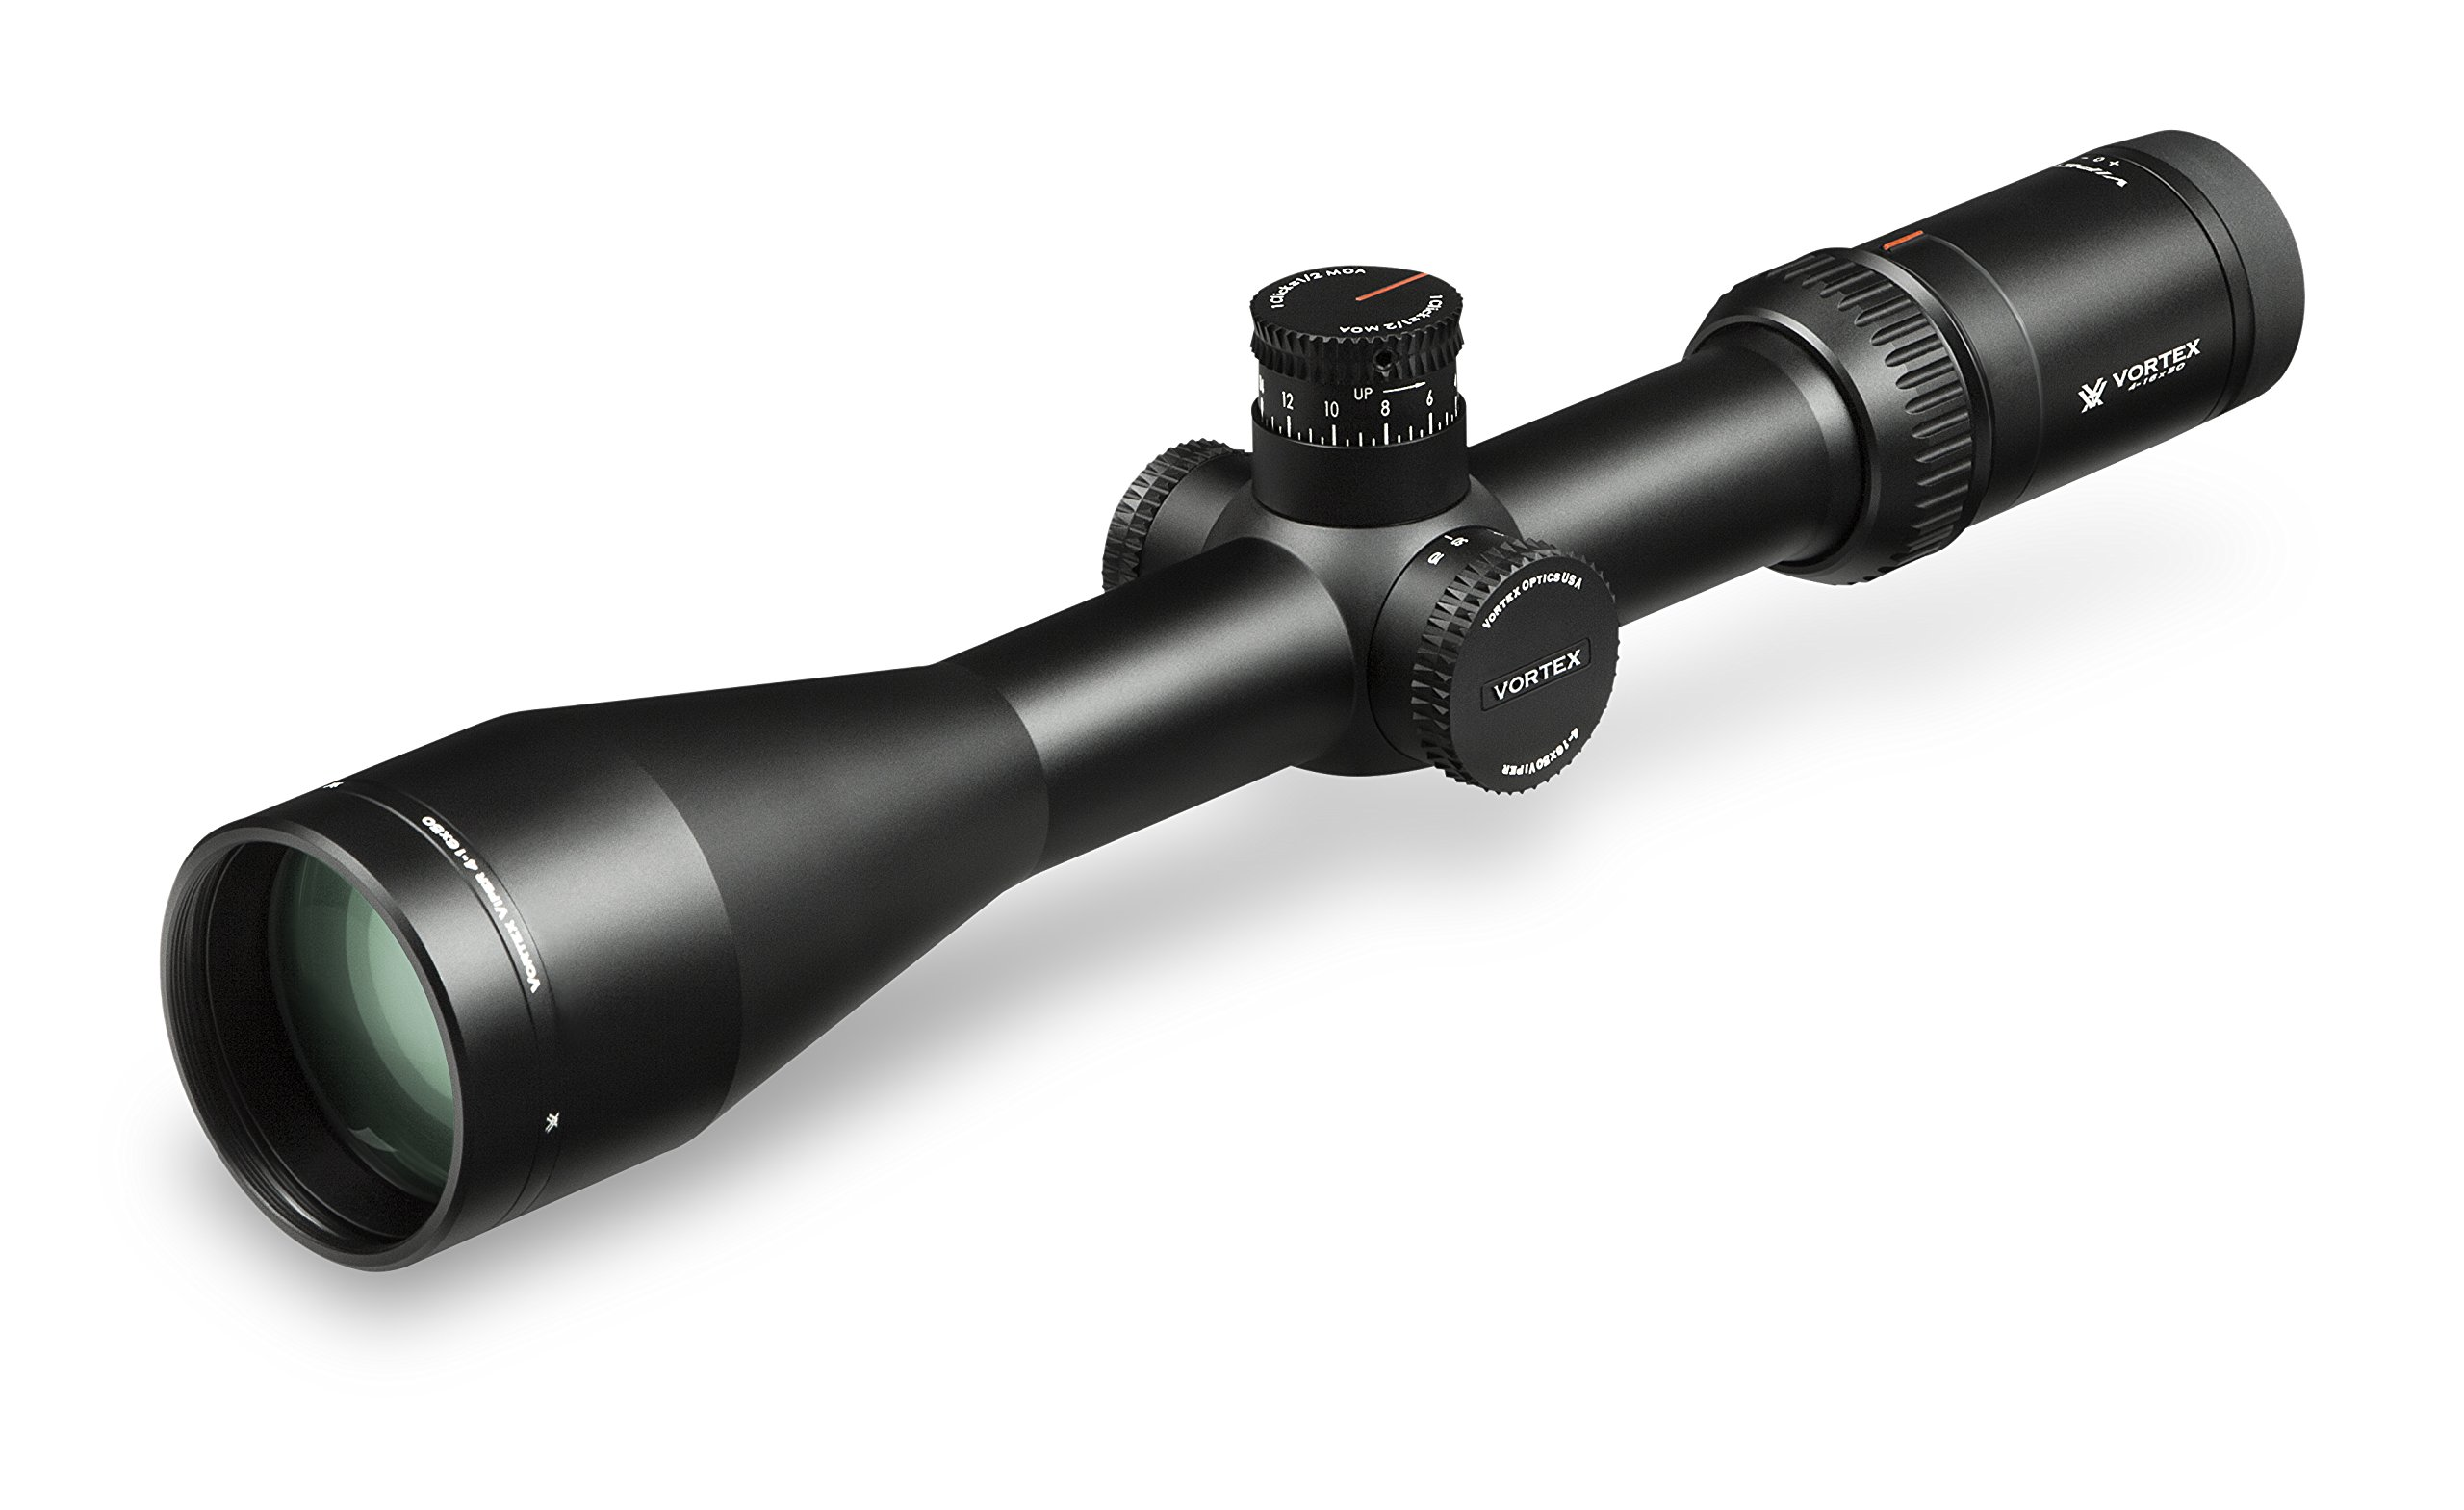 Vortex Optics Viper HS Long Range Rifle Scope, 4-16x50 by Vortex Optics (Image #1)